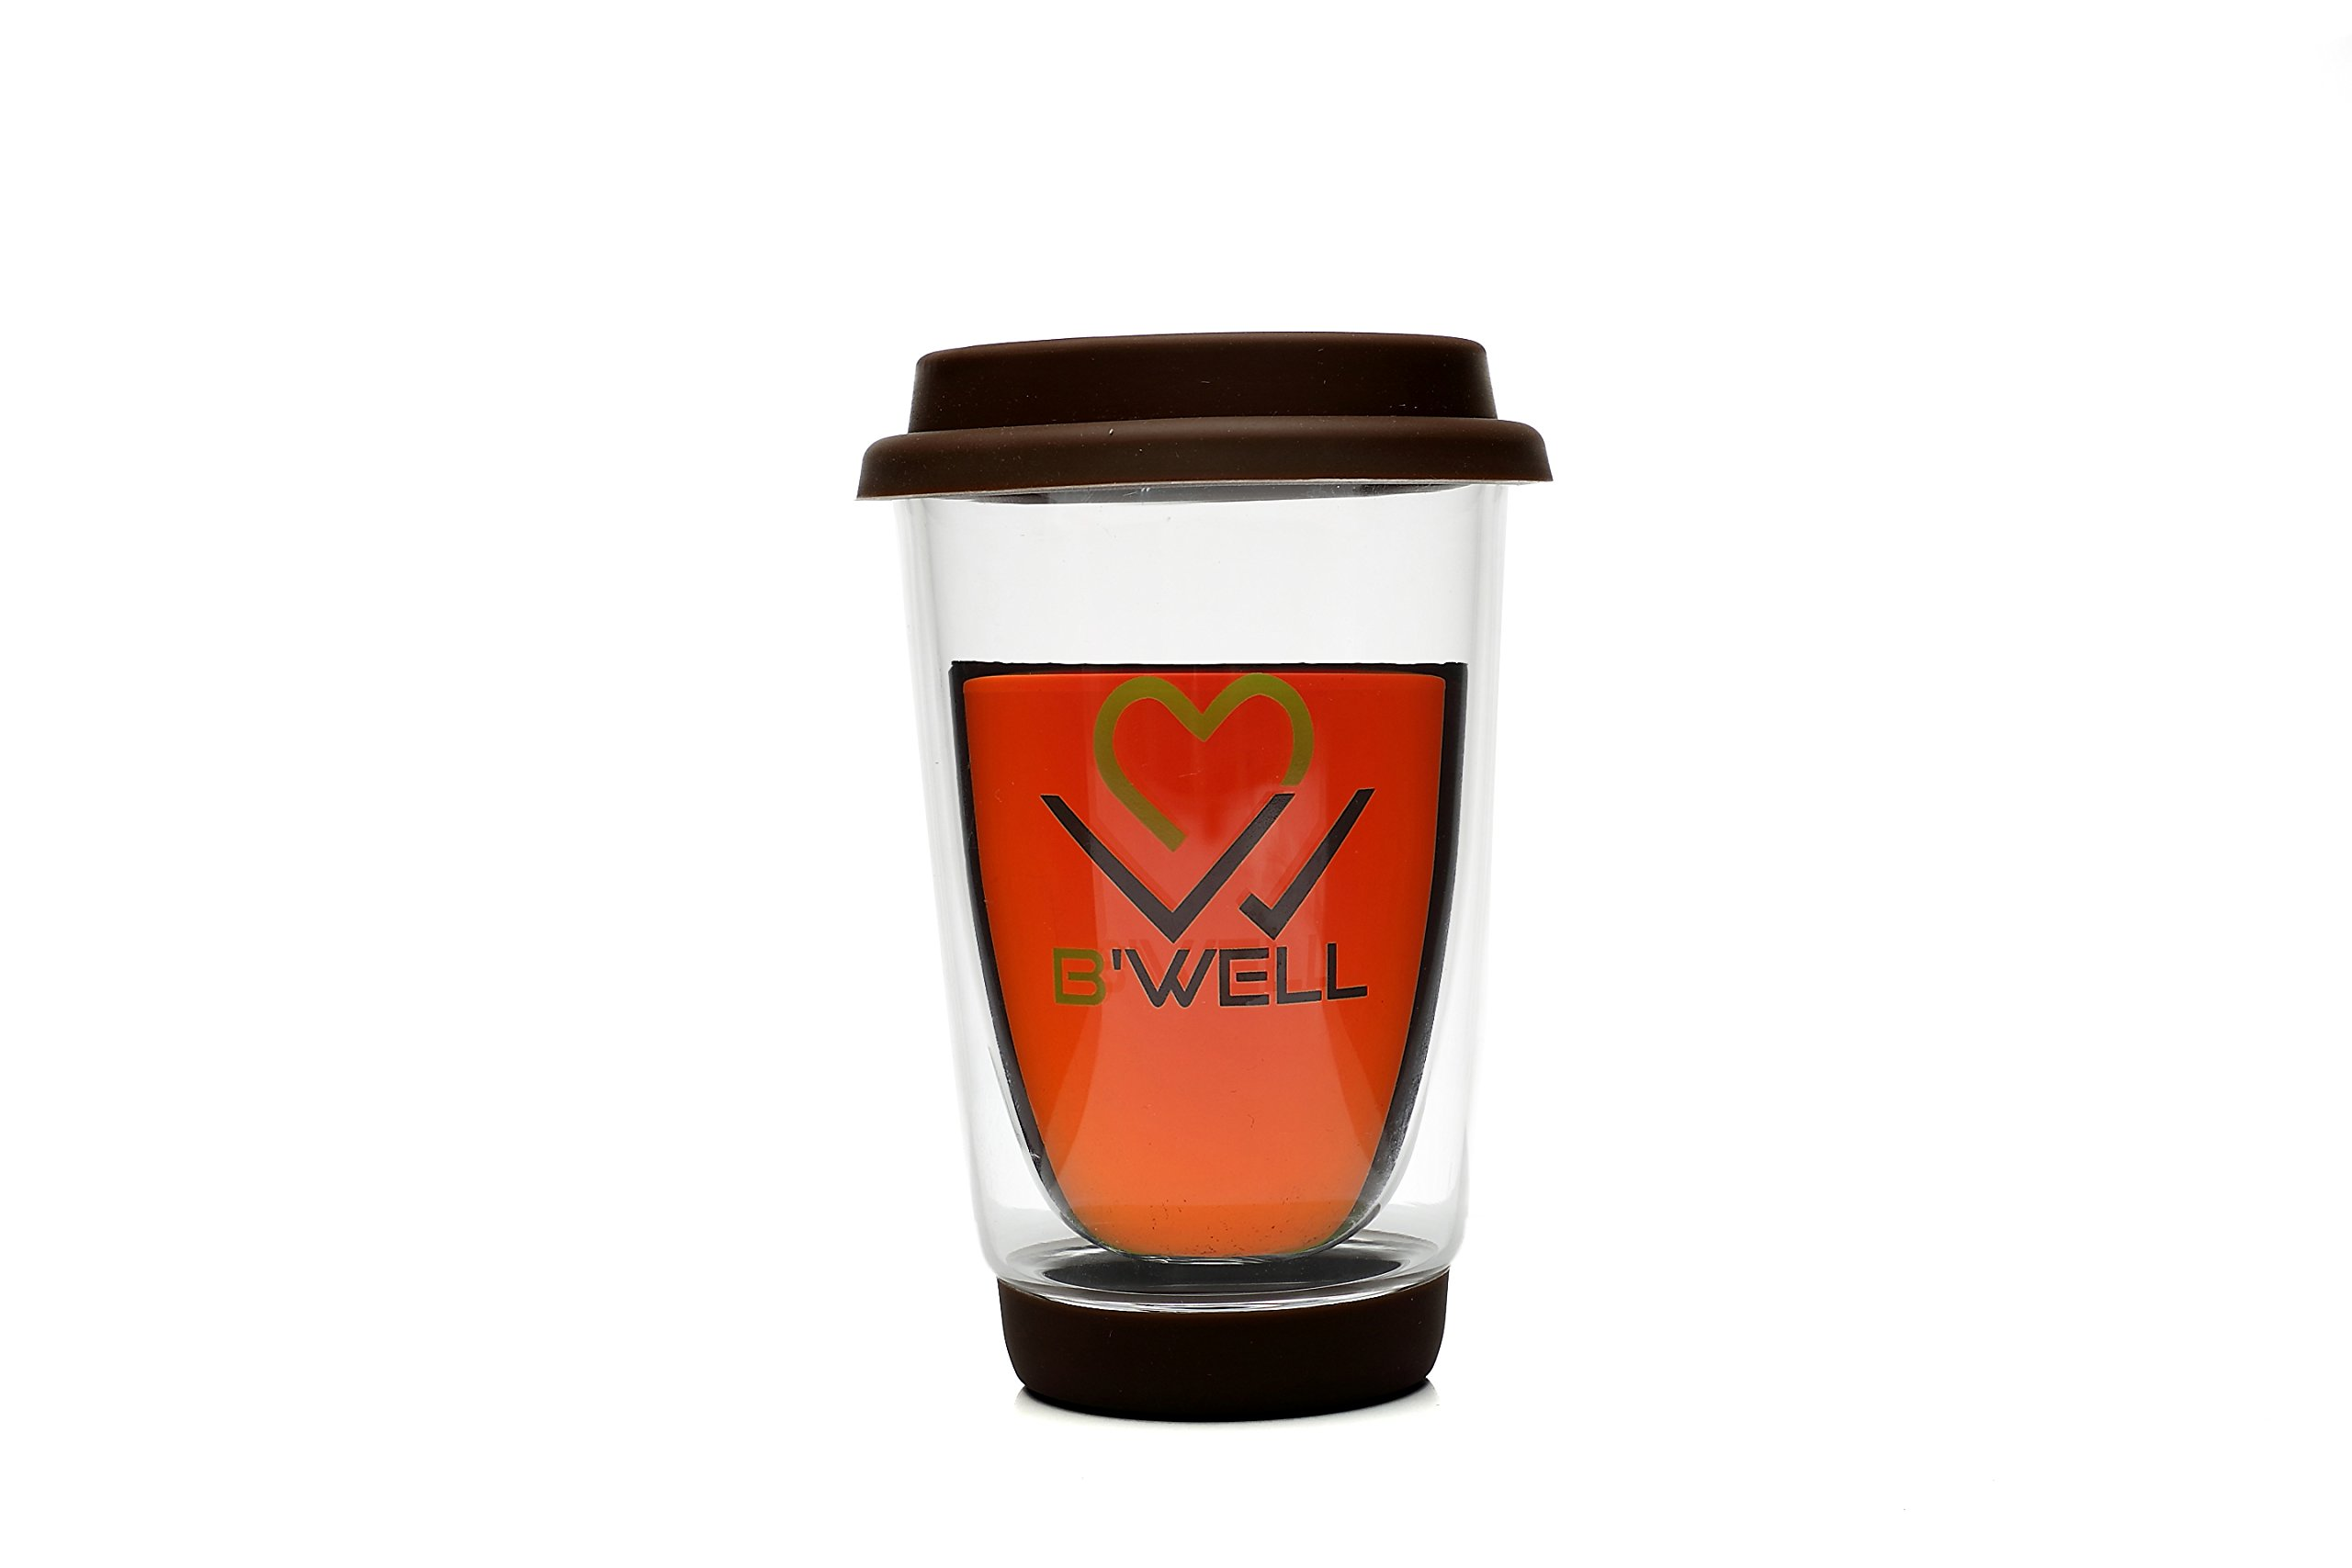 B'WELL Glass Reusable Coffee Cup Tea Cup - Double Wall Insulated Travel Coffee Mug Drinking Glass Tumbler On The Go Mug - Silicone Lid Hot & Cold Drinks Dishwasher & Microwave Safe 12 Ounces (Brown)